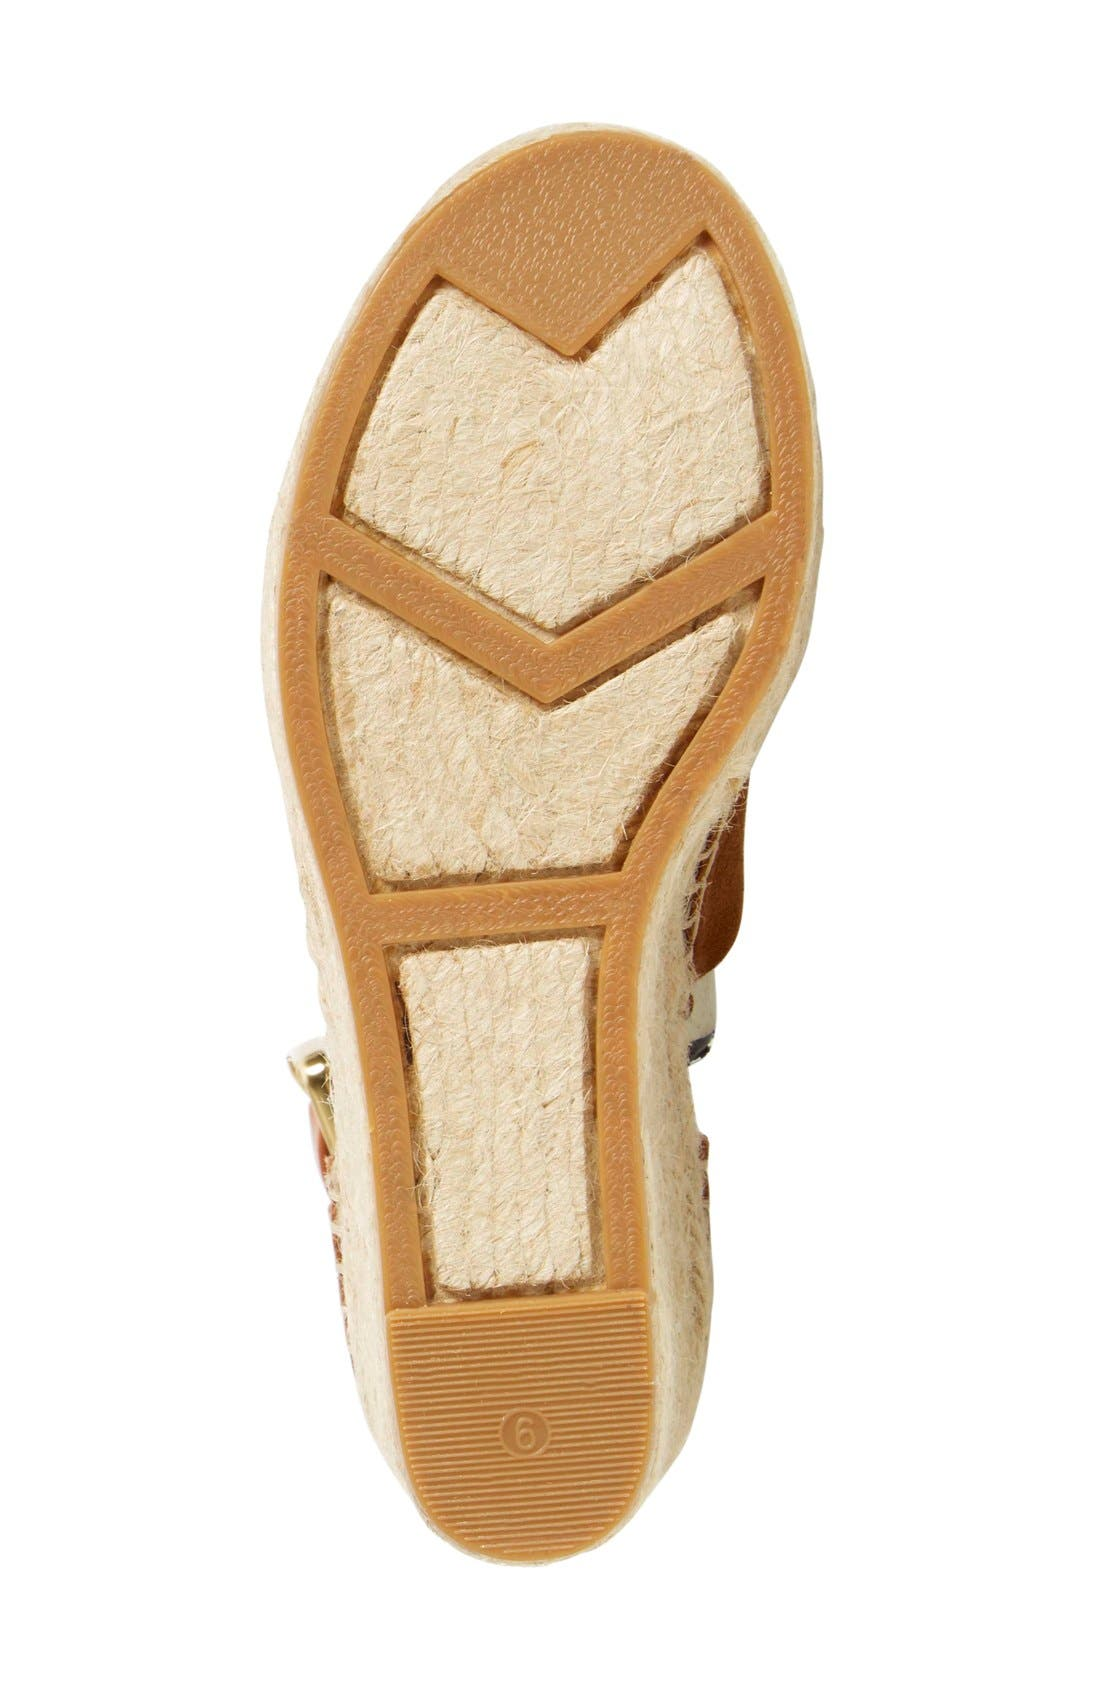 'Adalyn' Espadrille Wedge Sandal,                             Alternate thumbnail 4, color,                             Tan/ Saddle